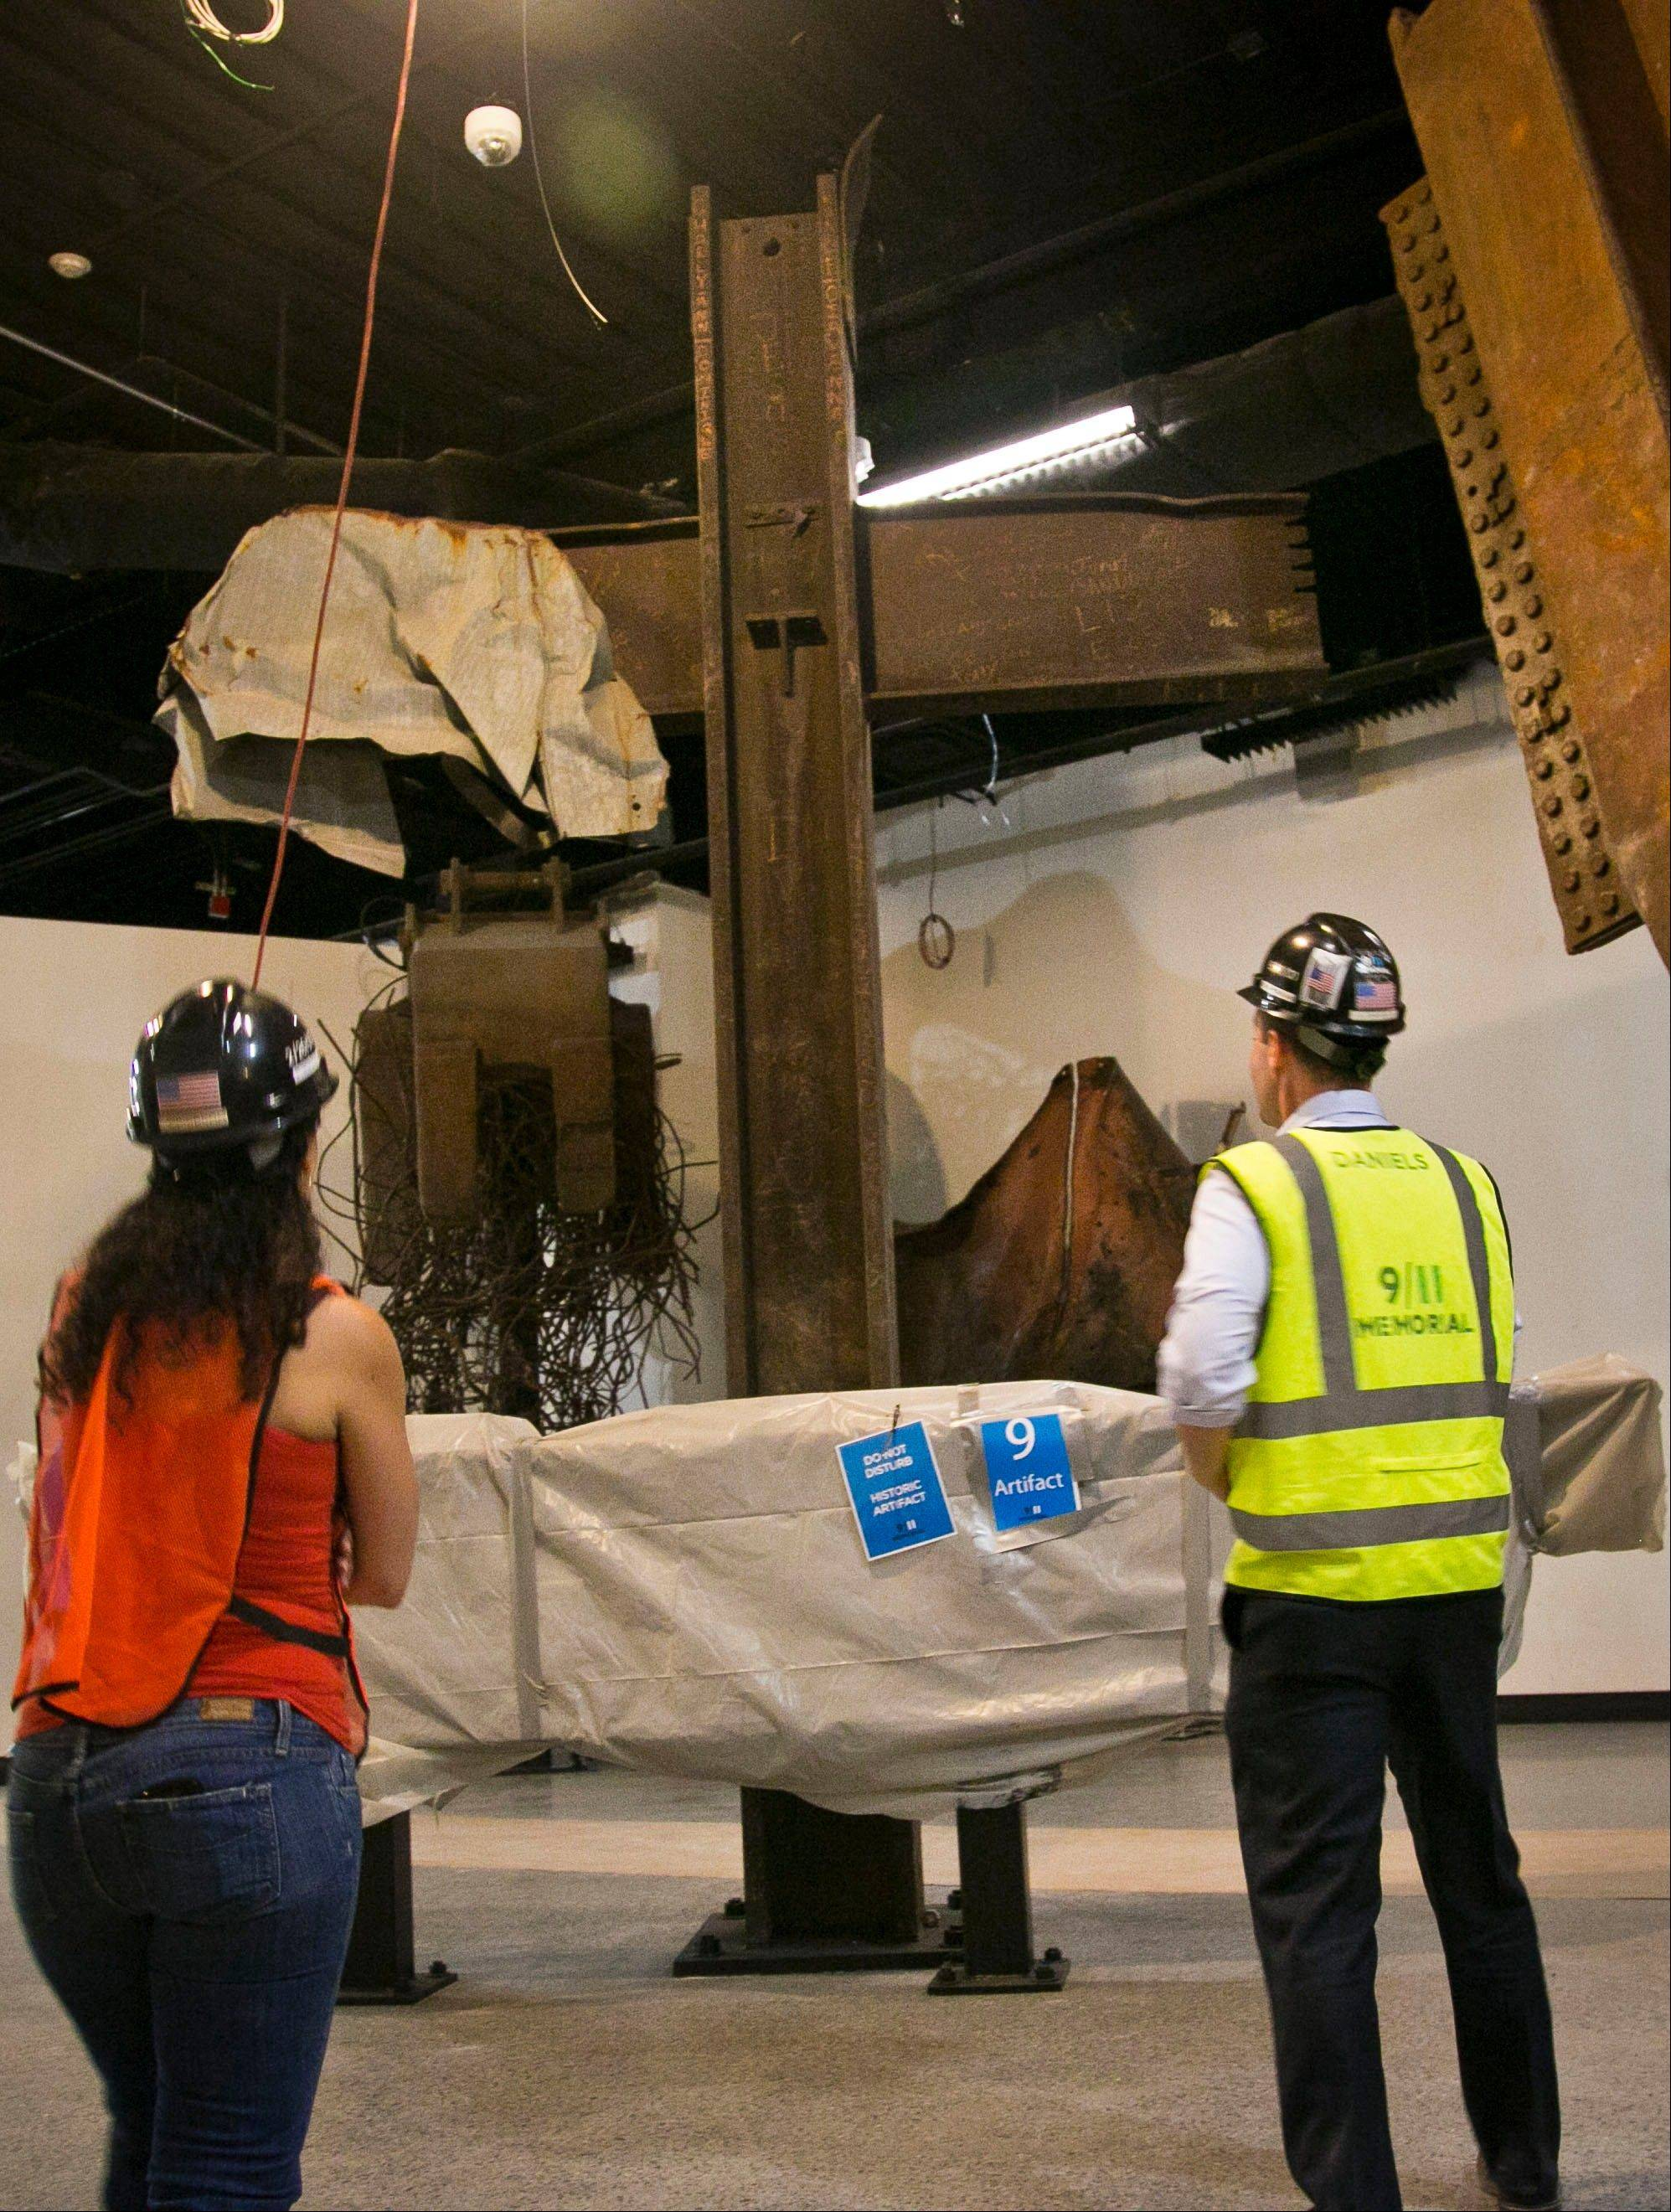 Joe Daniels, right, 911 Memorial president, and Anthoula Katsimatides, left, a member of the 911 Memorial board, approach a steel cross beam recovered from the World Trade Center (WTC) site and installed at the 911 Memorial Museum.